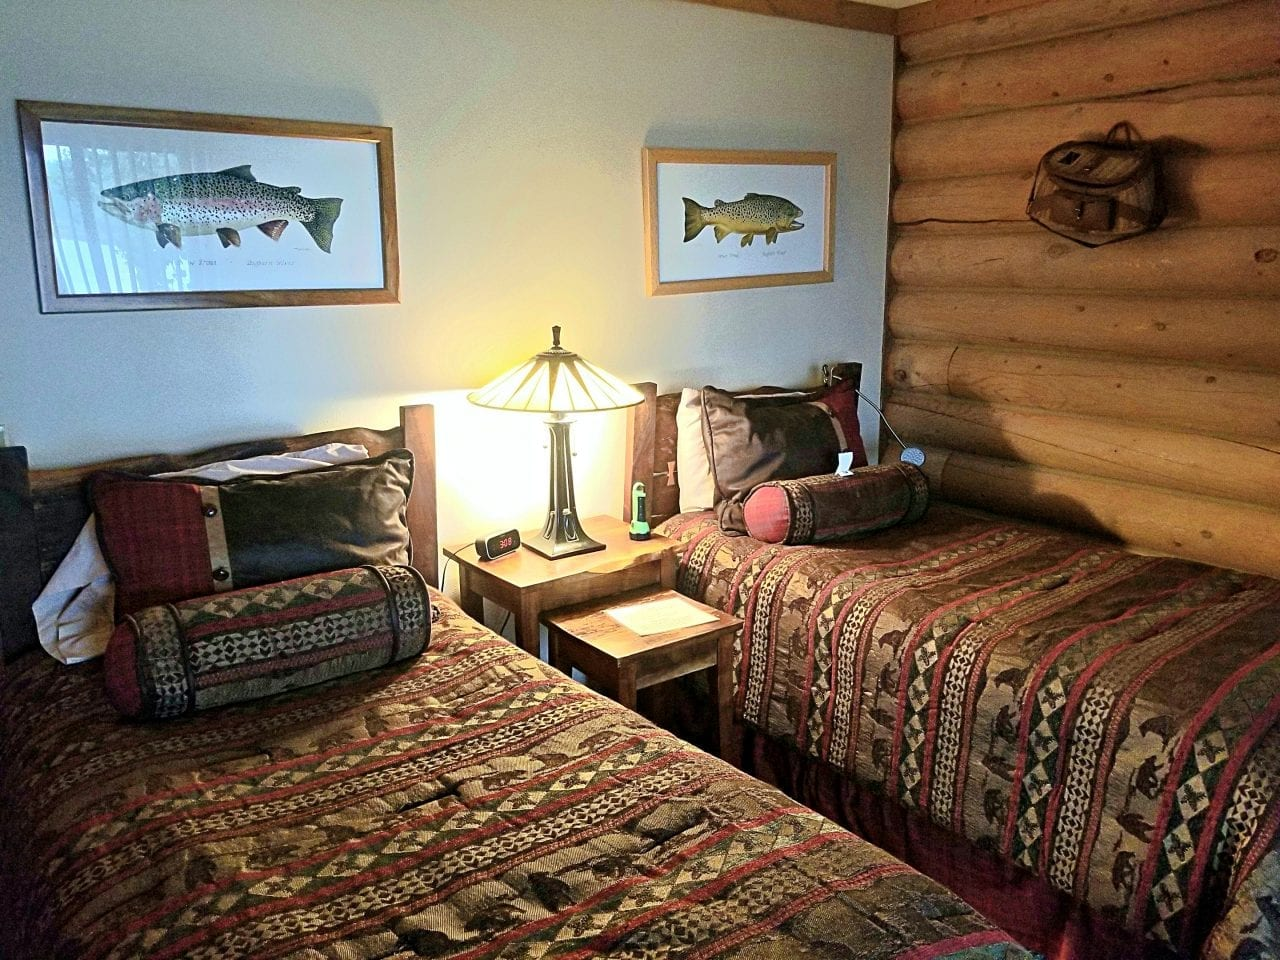 A cozy bedroom at the Bighorn River Lodge